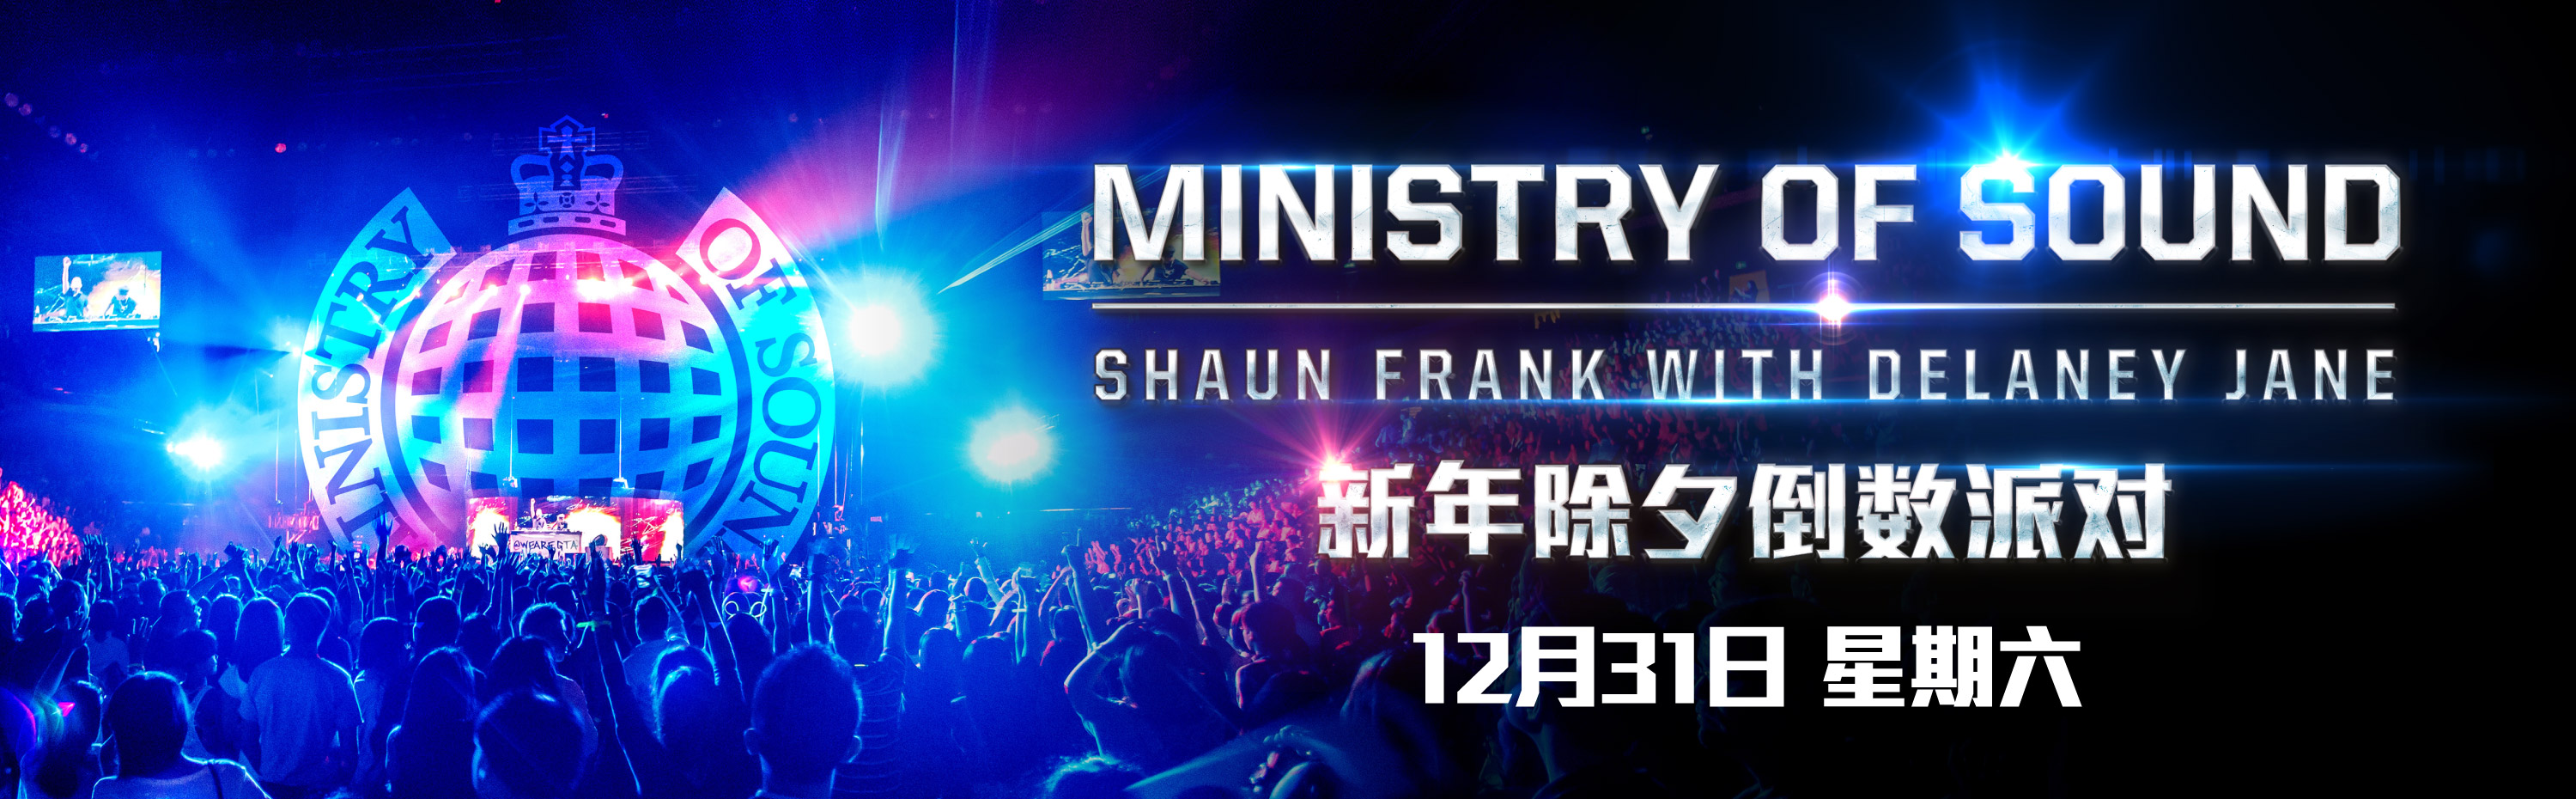 Ministry of Sound新年除夕倒数派对 Shaun Frank with Delaney Jane